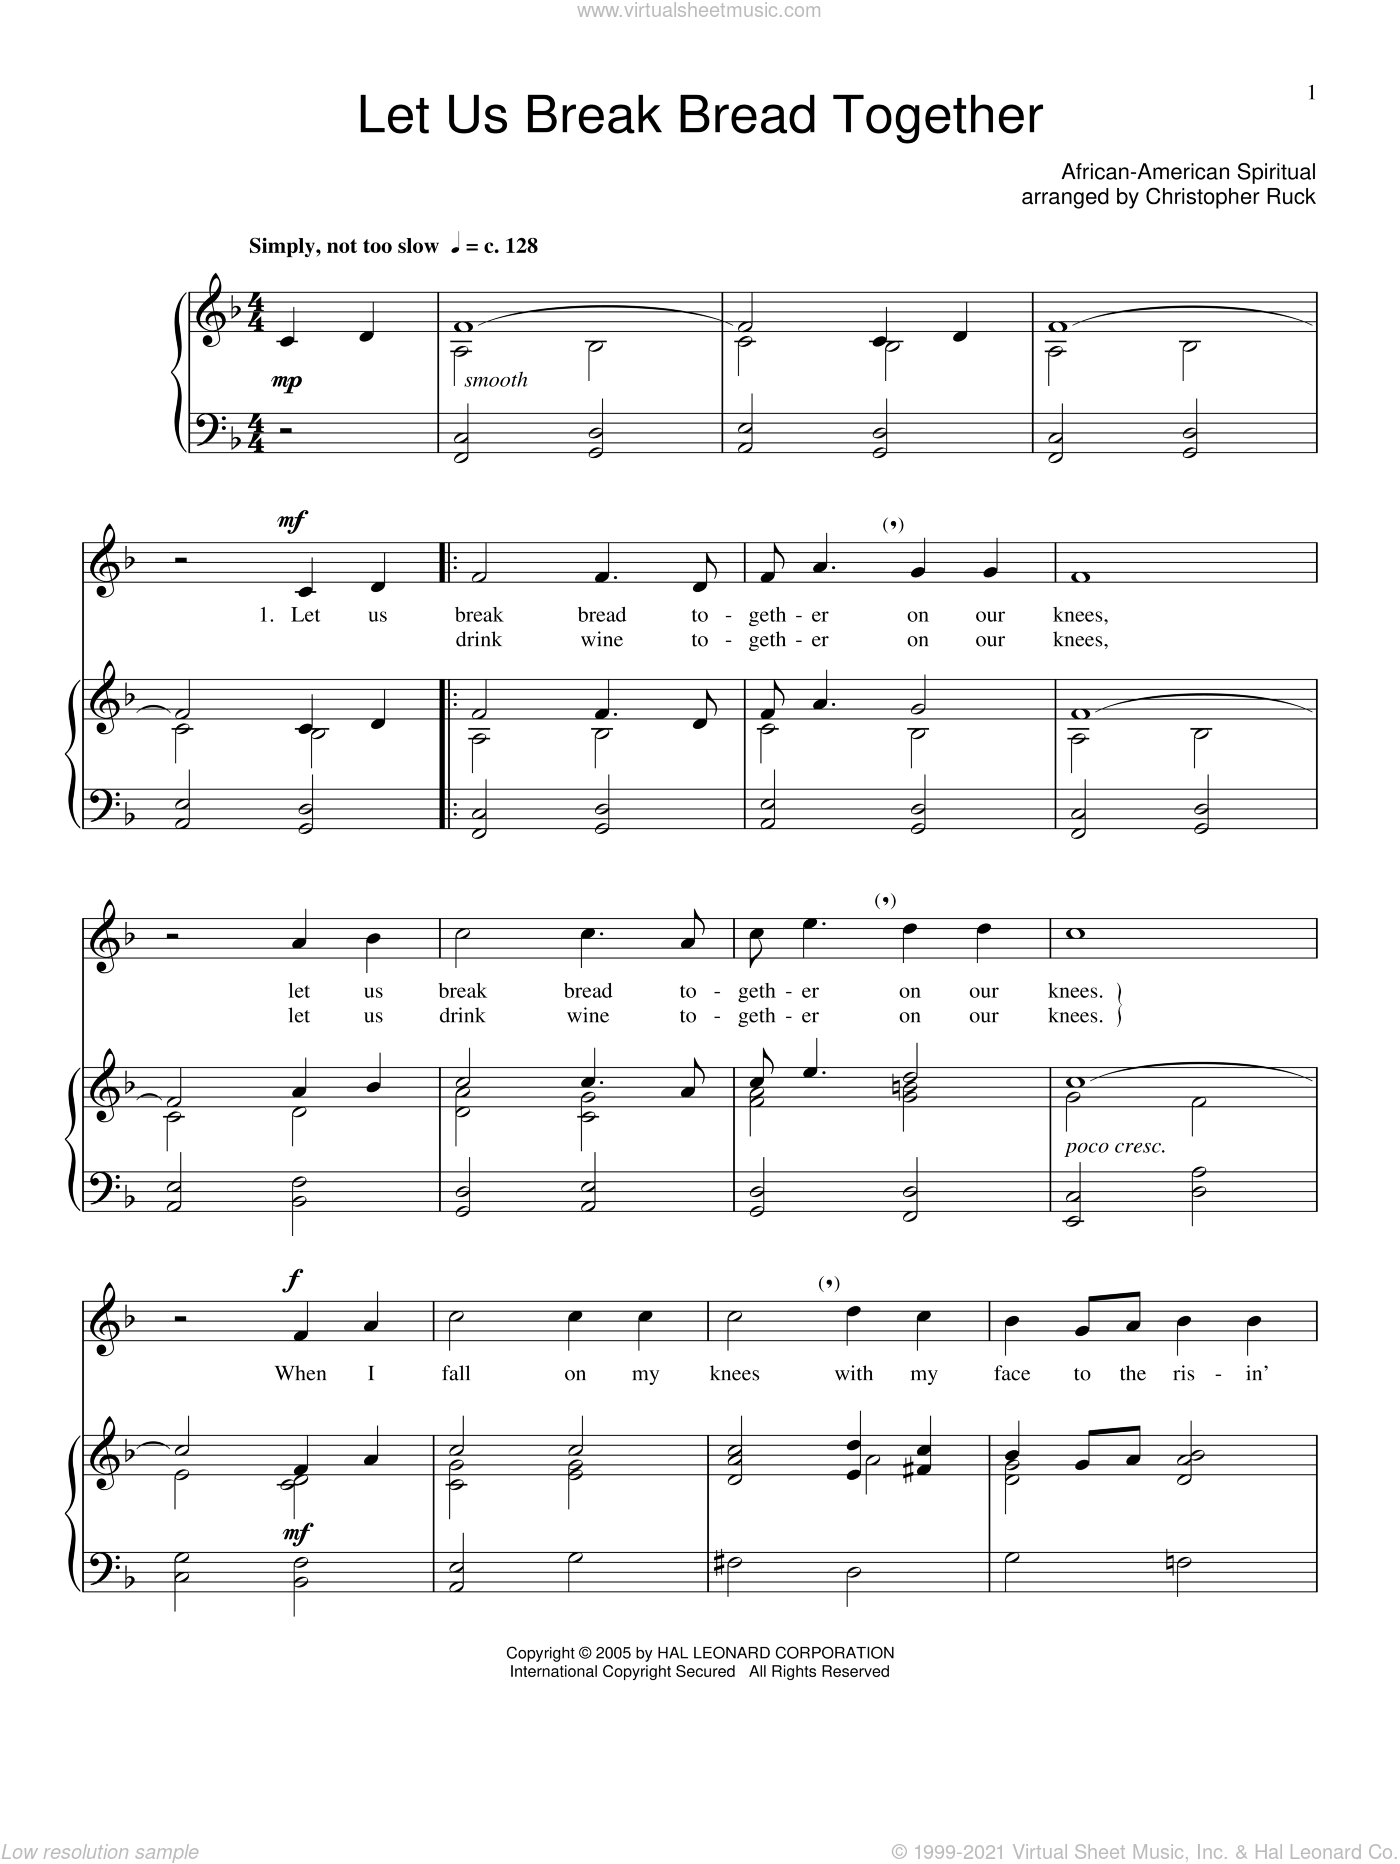 Let Us Break Bread Together sheet music for voice and piano, intermediate skill level